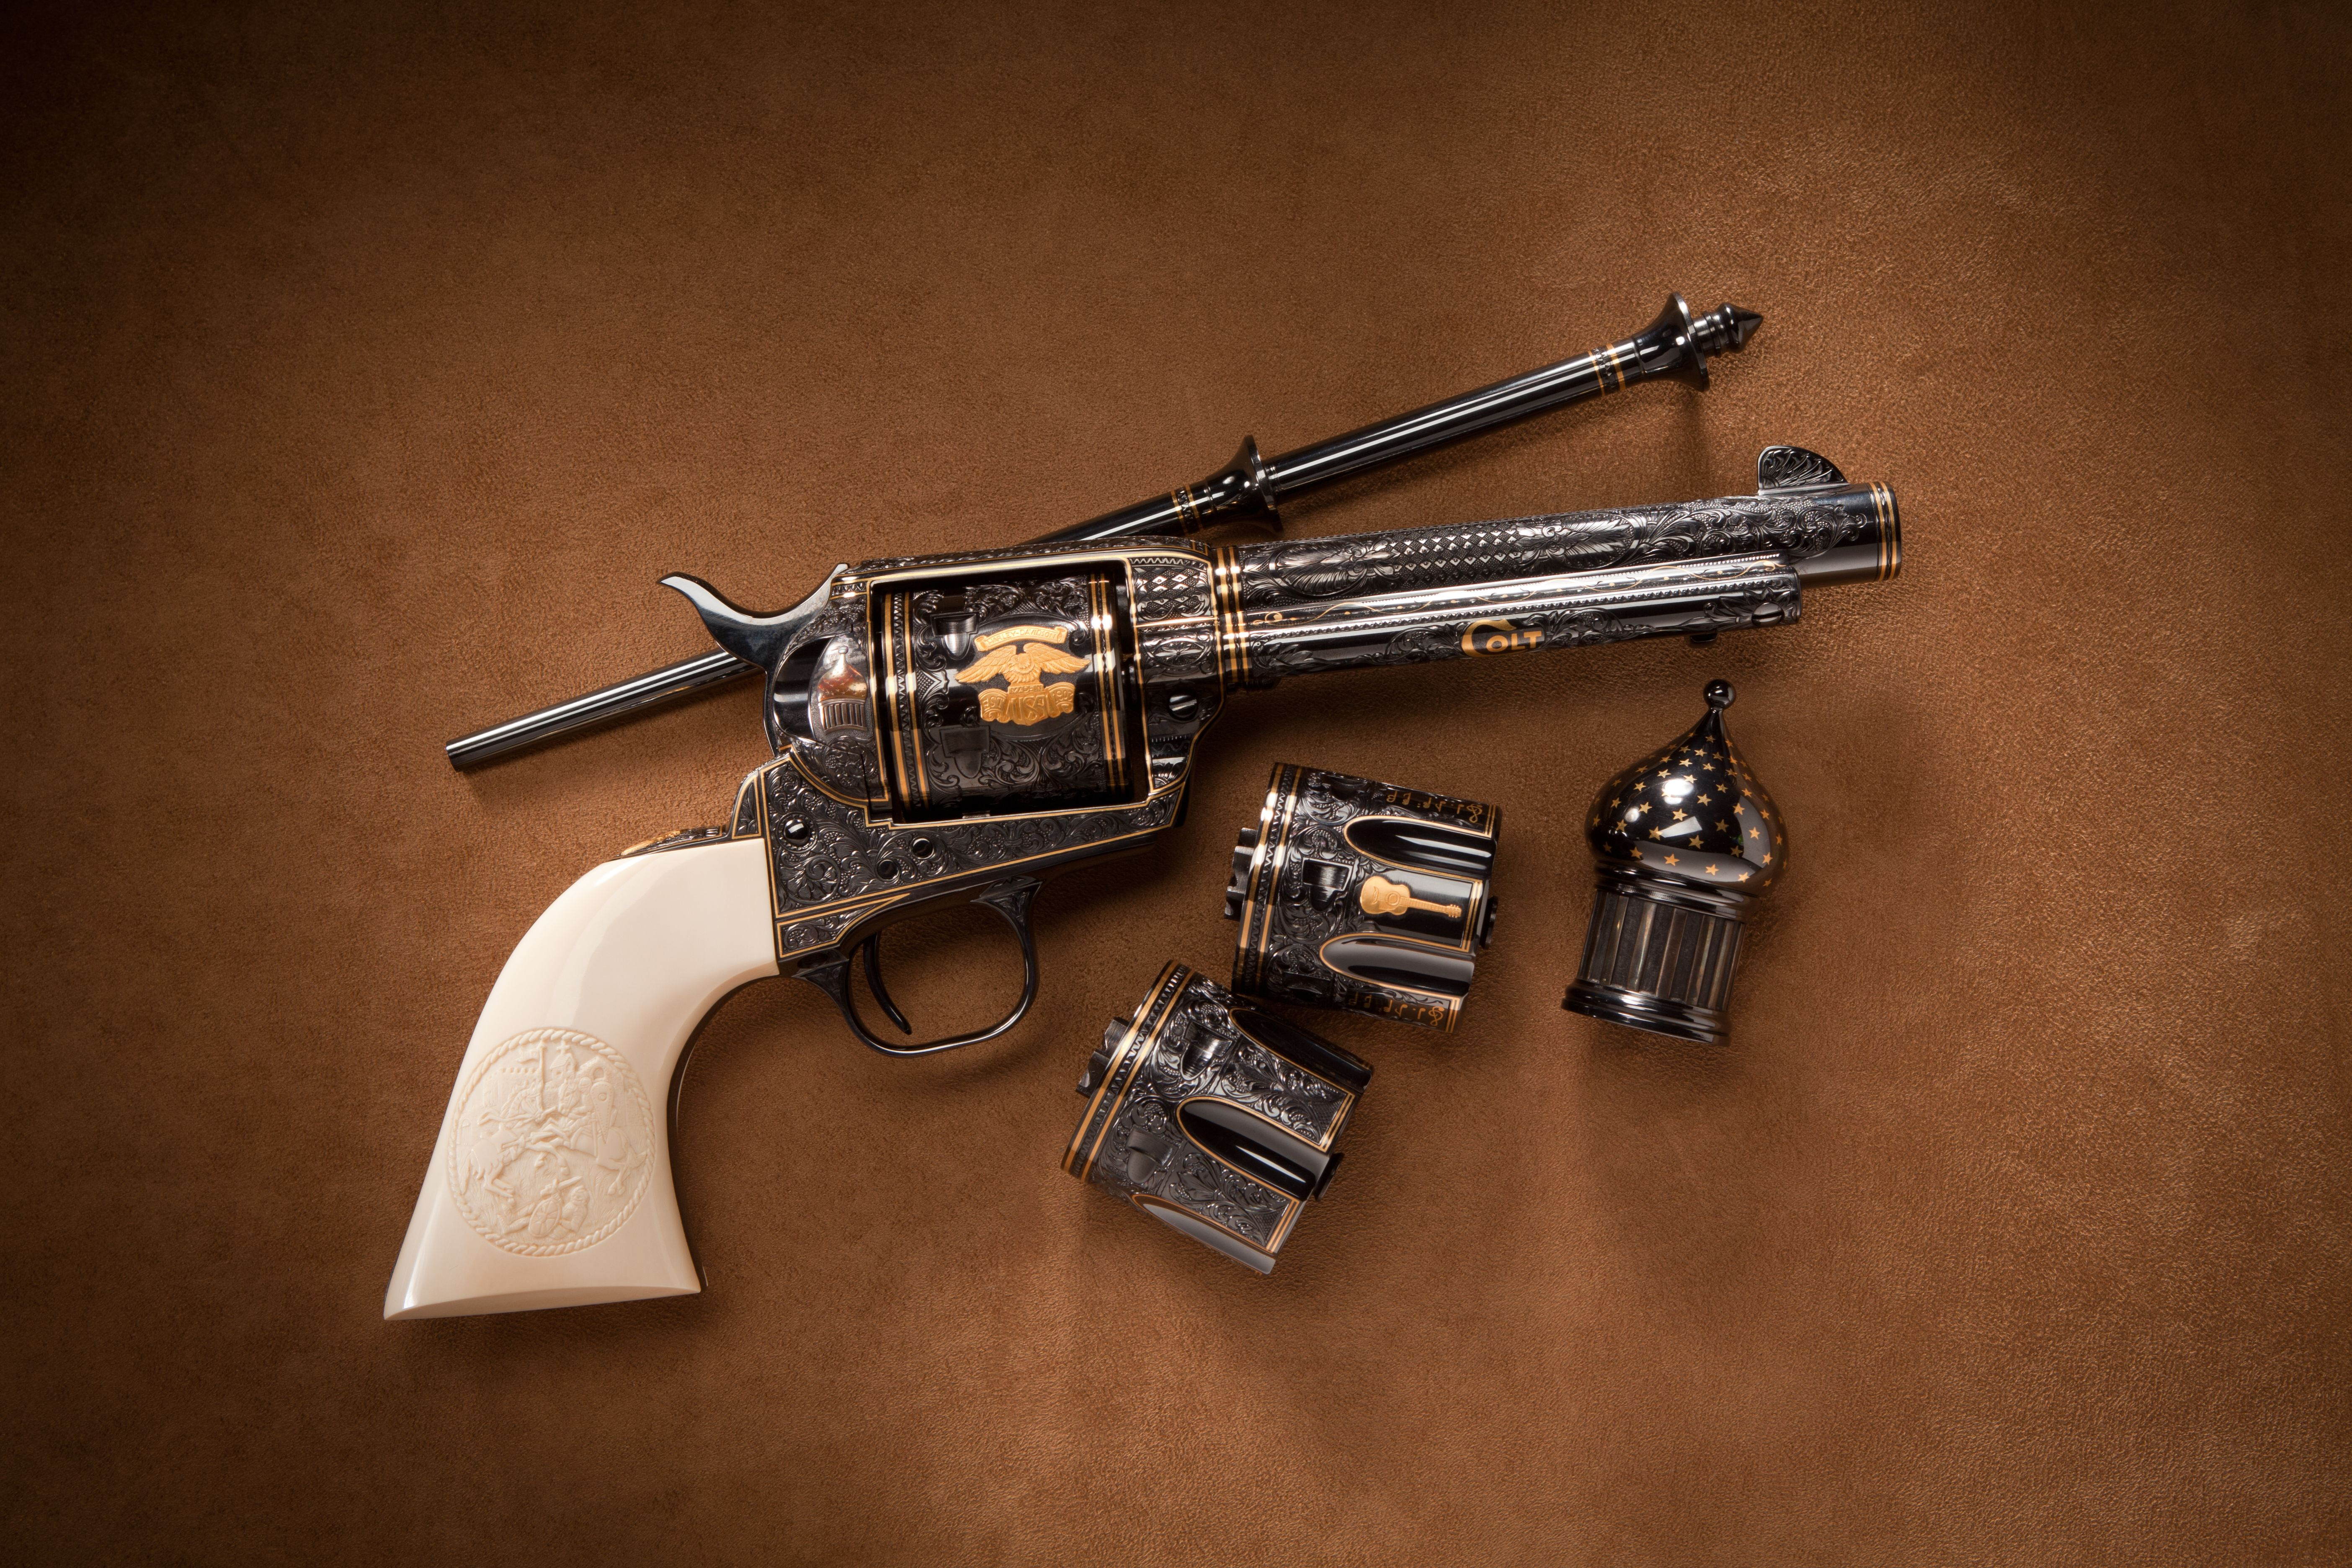 Al DeJohn's Colt Single Action Army Revolver